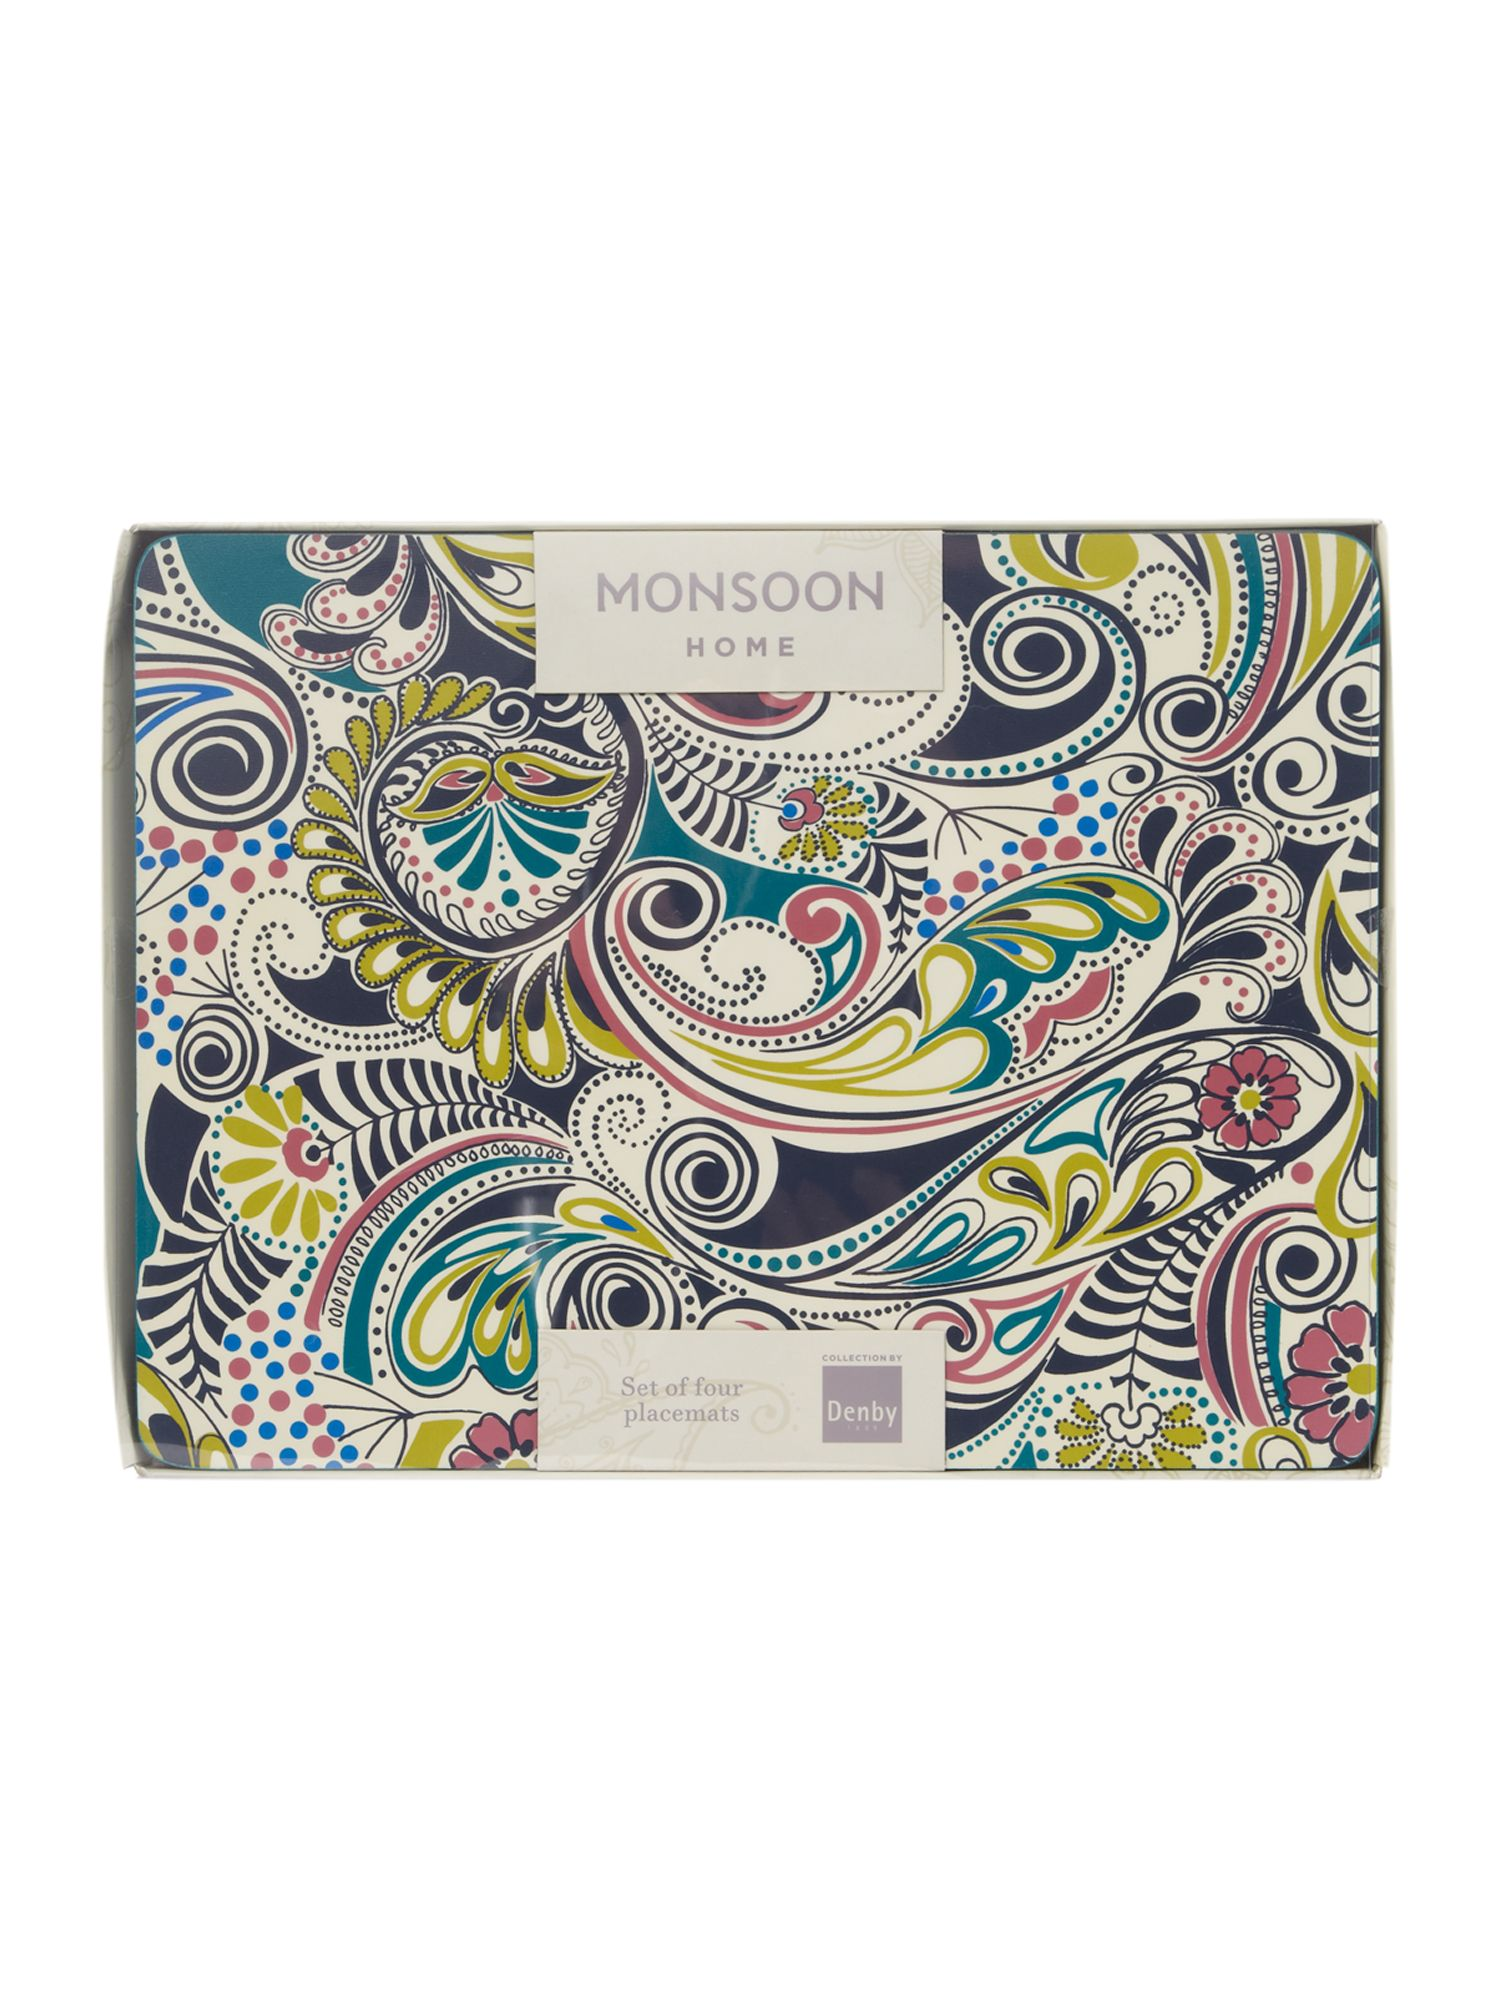 Monsoon cosmic placemats and coasters